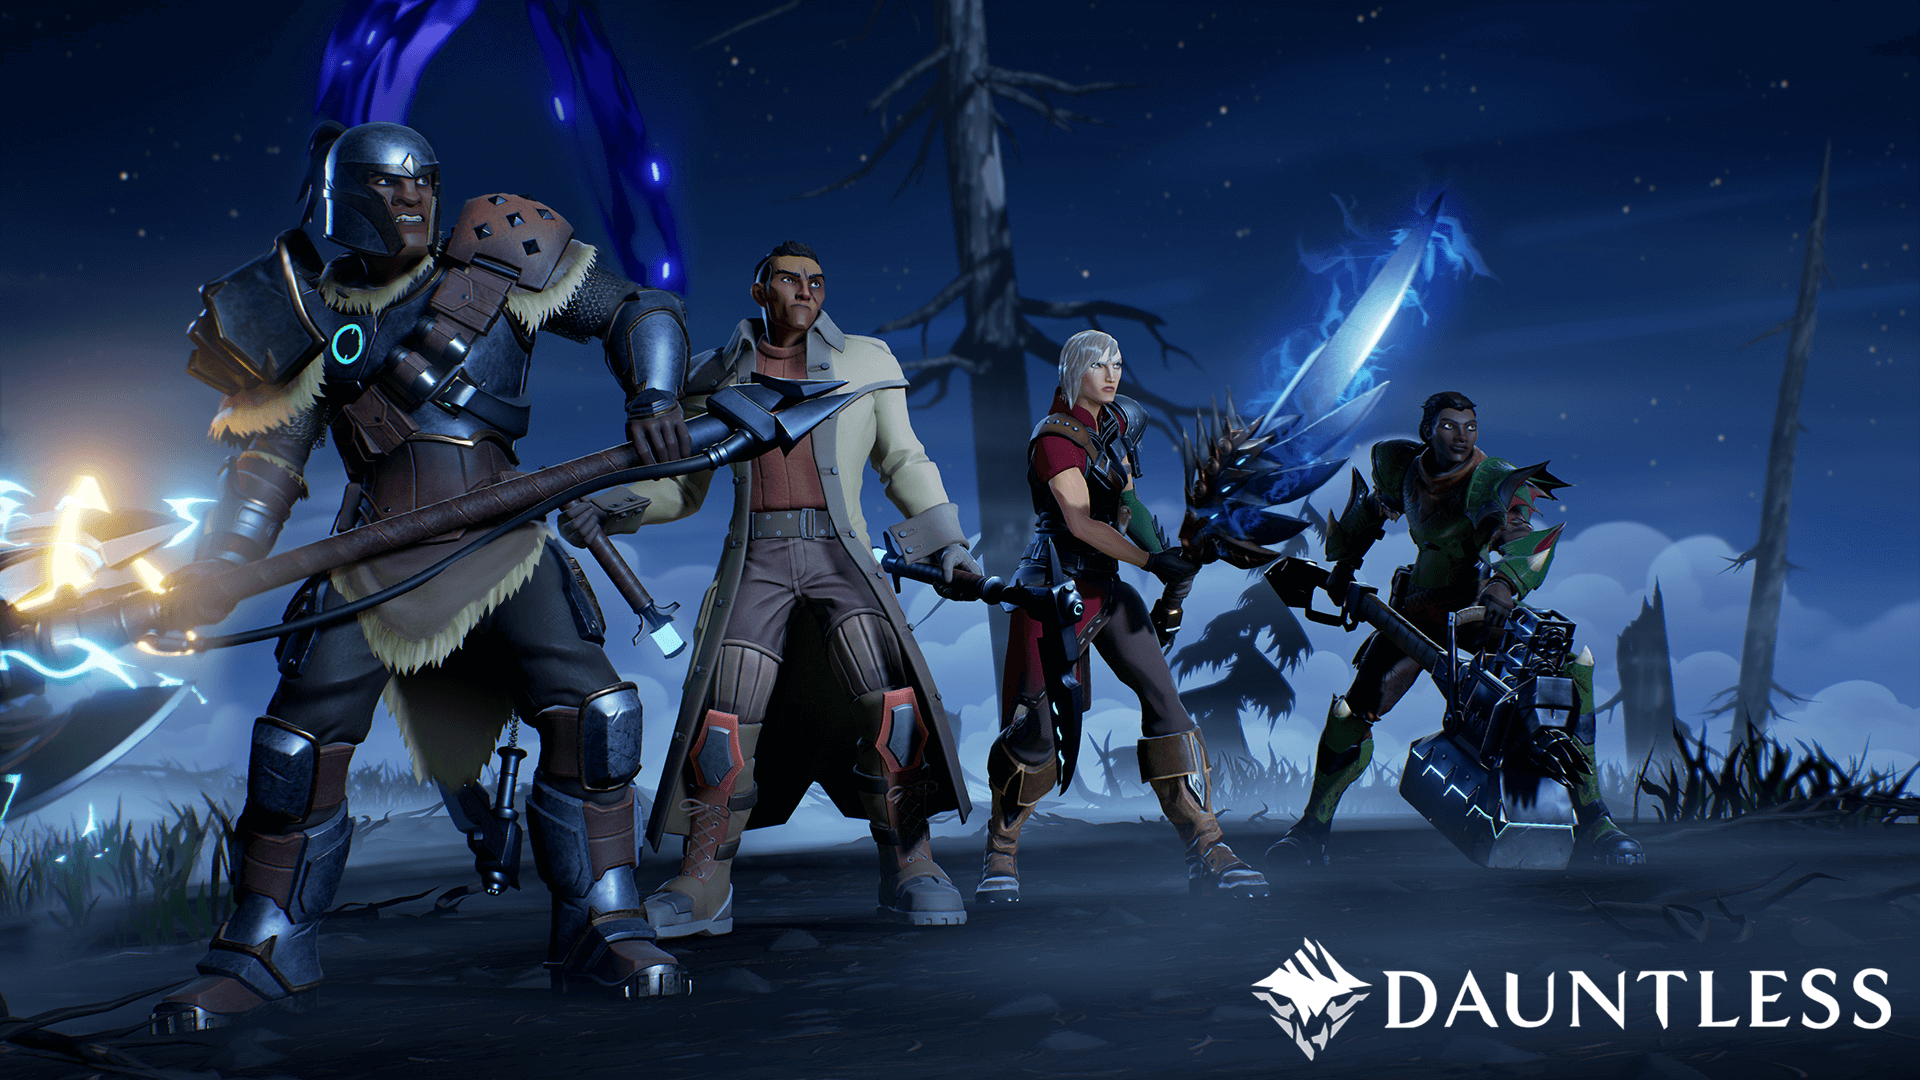 hd dauntless wallpaper 67596